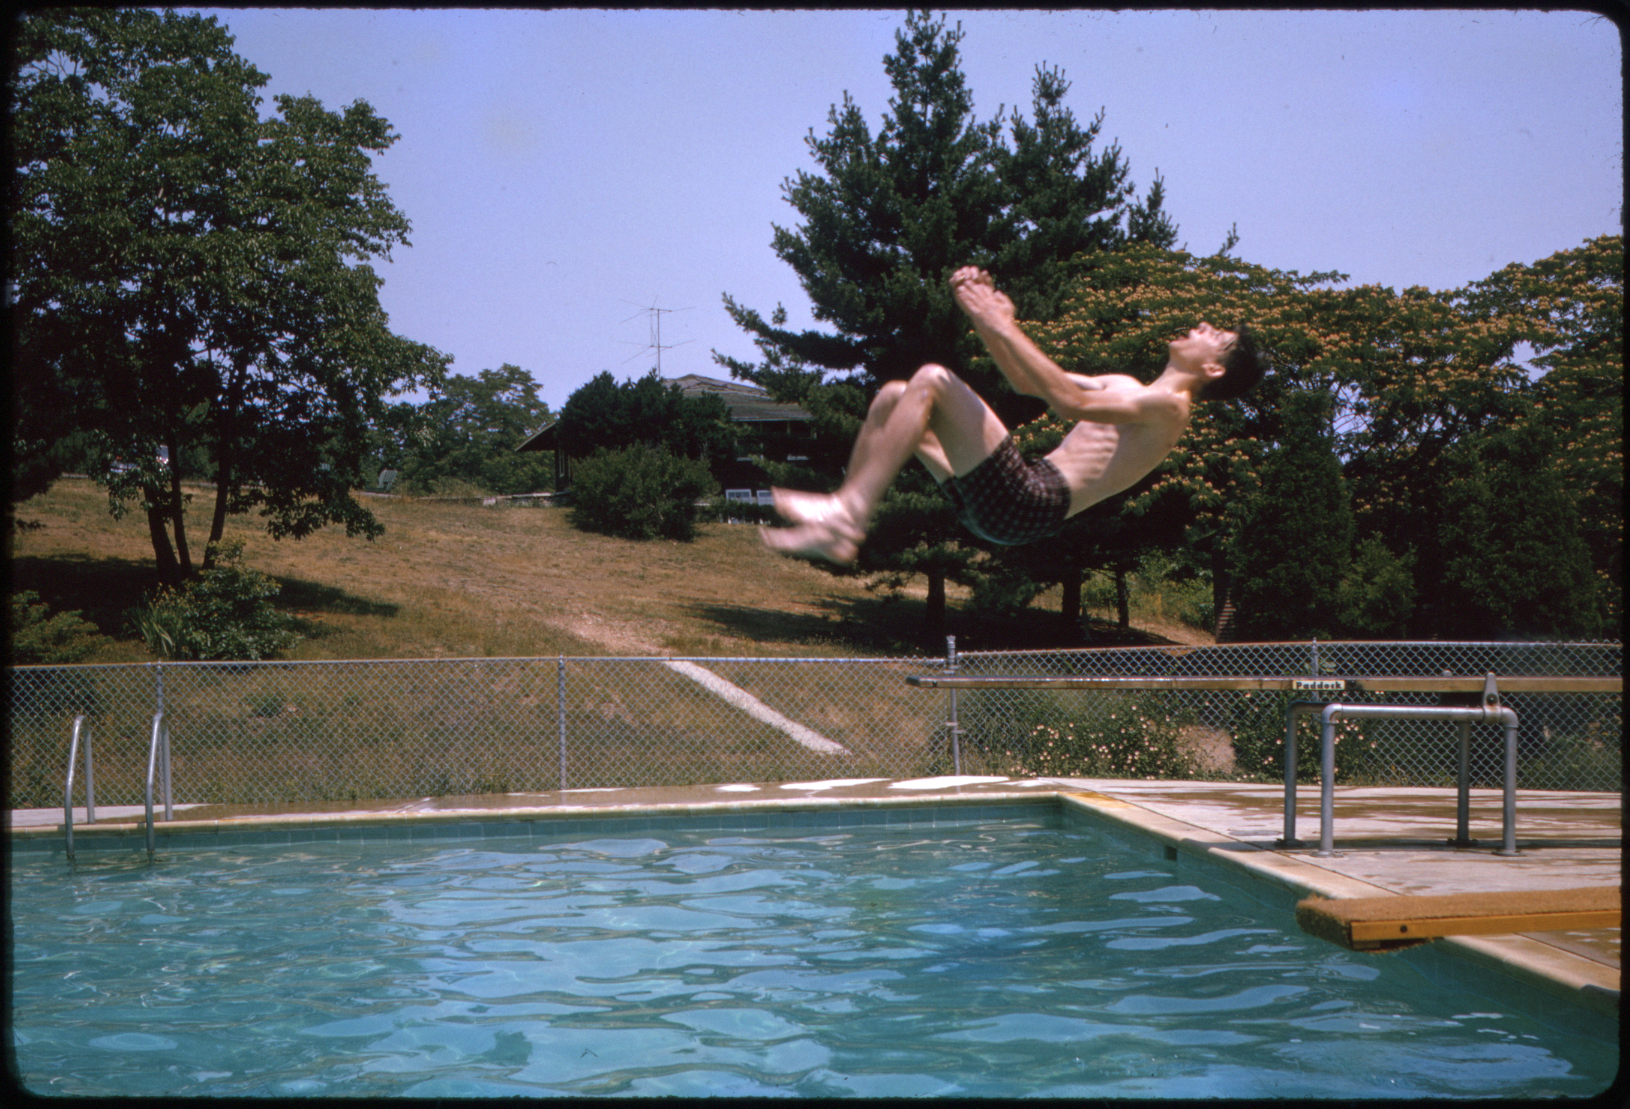 Backflip into the pool, Happy Valley Camp (Port Deposit, Md.), 1964. From Slides B141.